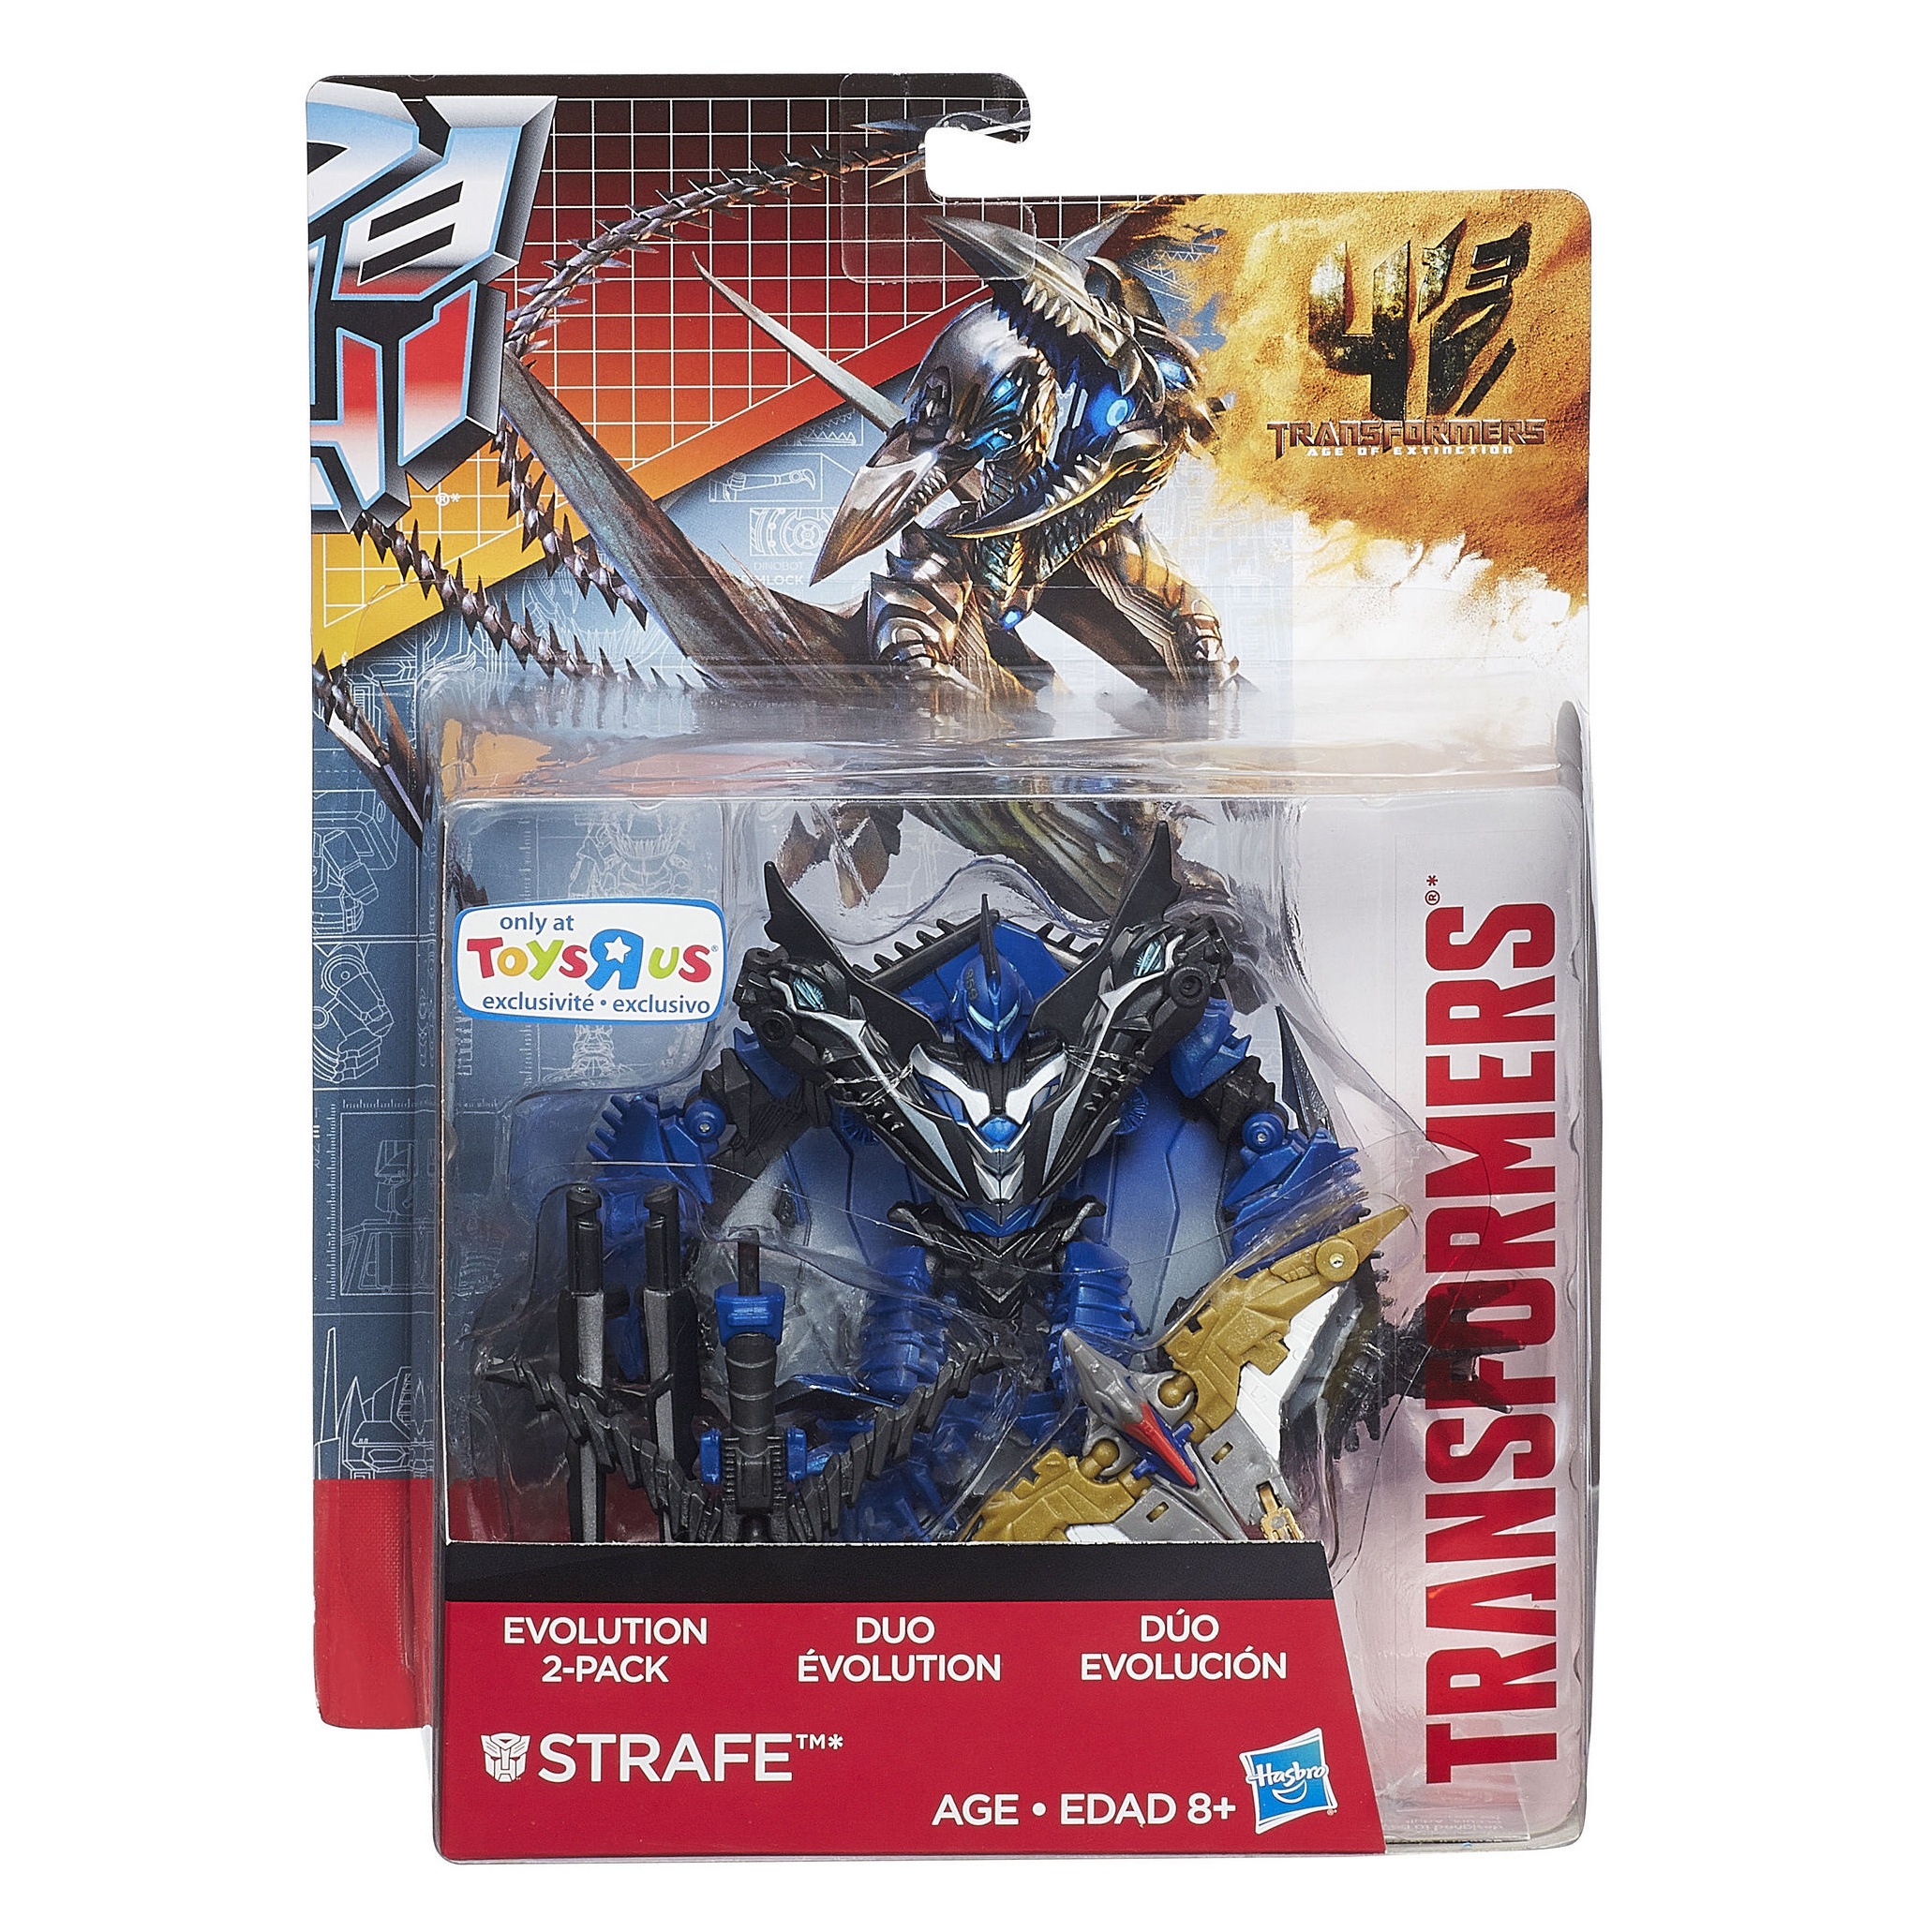 Hasbro TRANSFORMERS 4 STRAFE ToysRus Exclusives